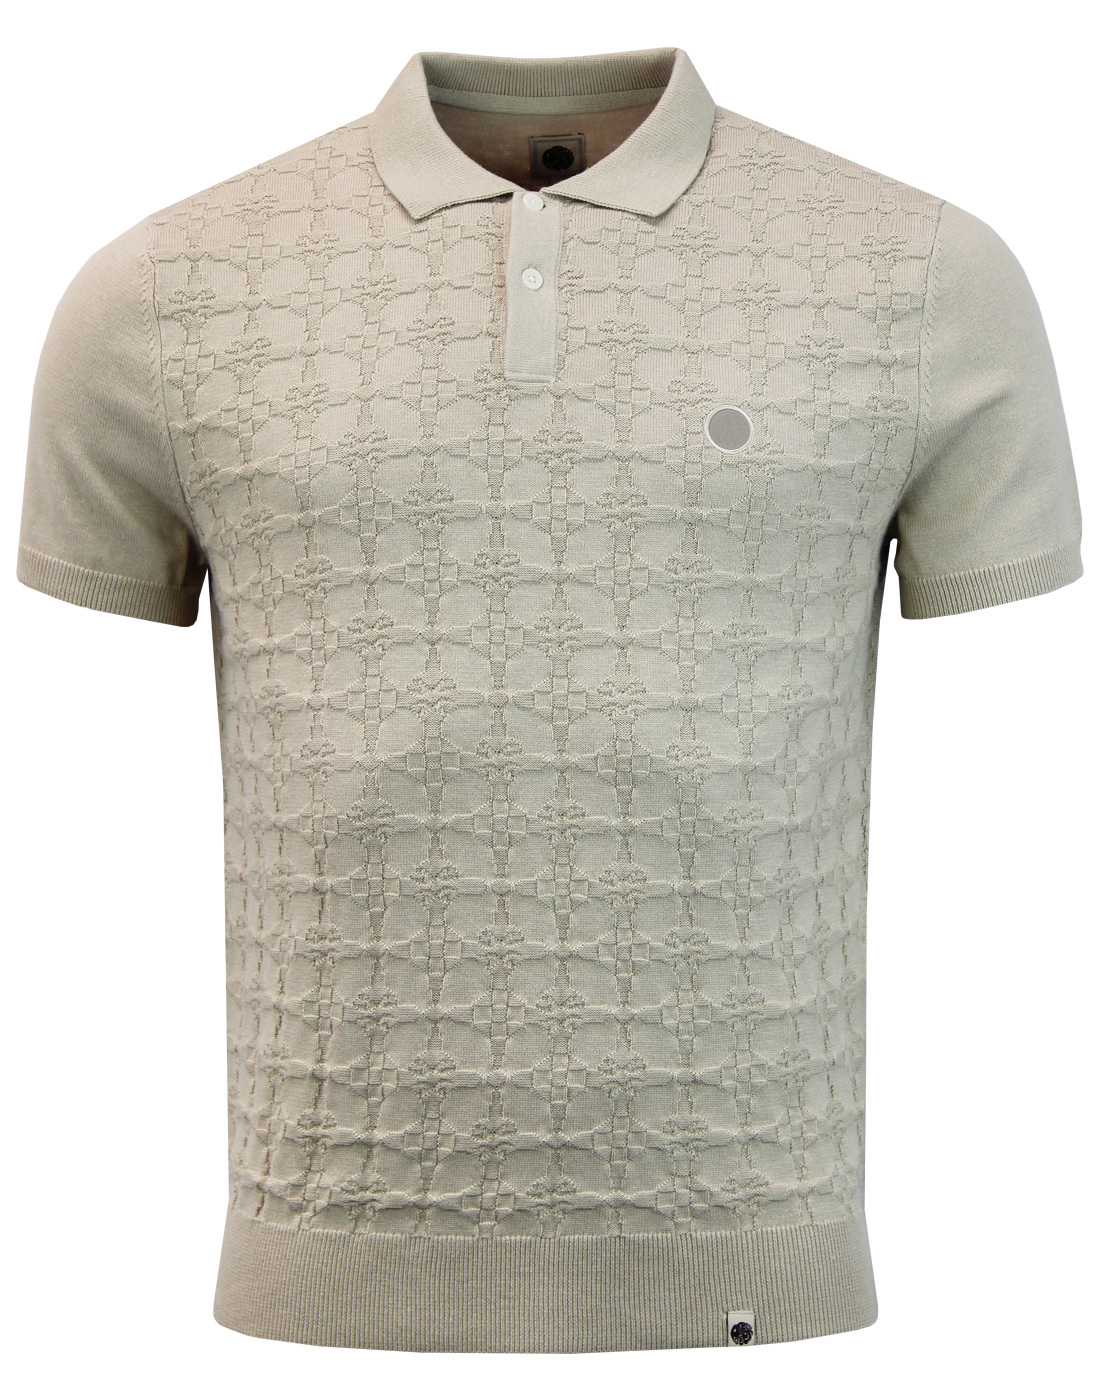 Eton PRETTY GREEN Retro Mod Textured Knit Polo (S)